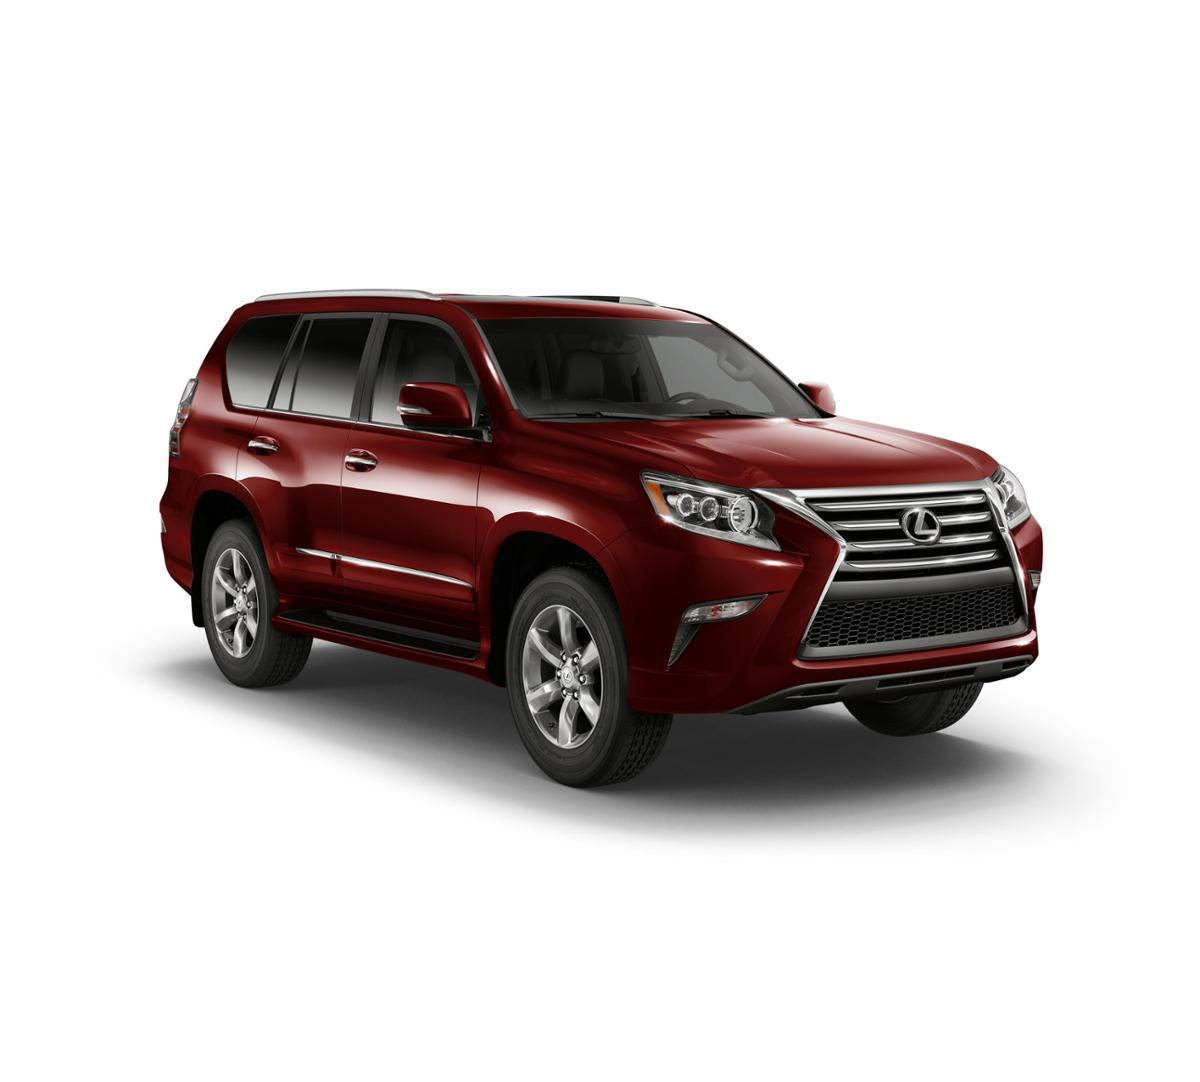 2019 Lexus GX 460 Vehicle Photo in Santa Monica, CA 90404